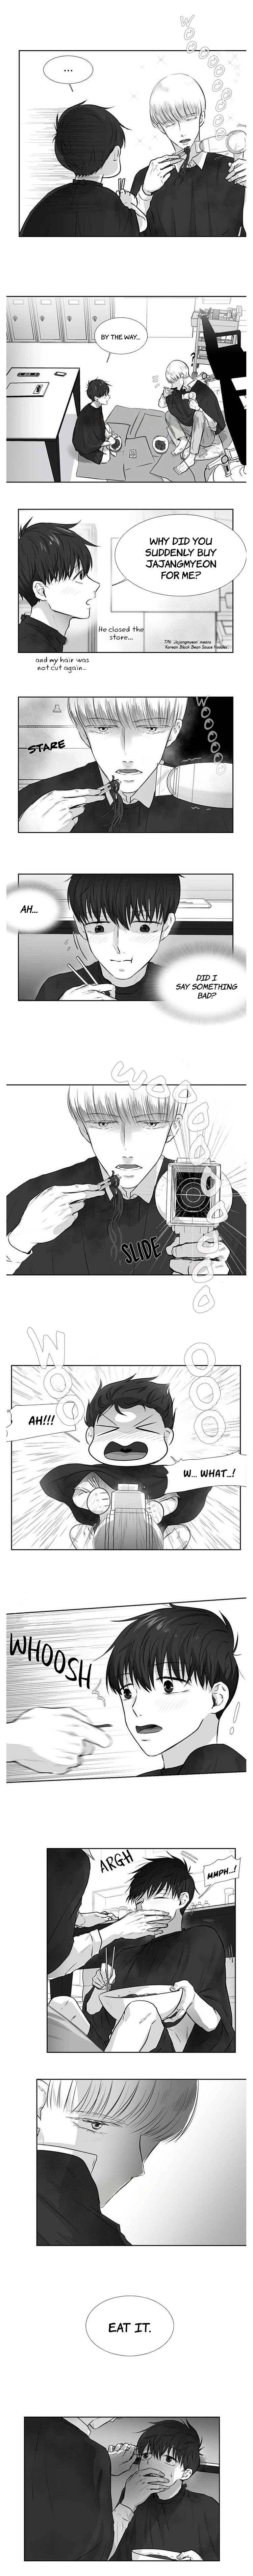 Hyung From The Neighborhood salon - chapter 2 - #3